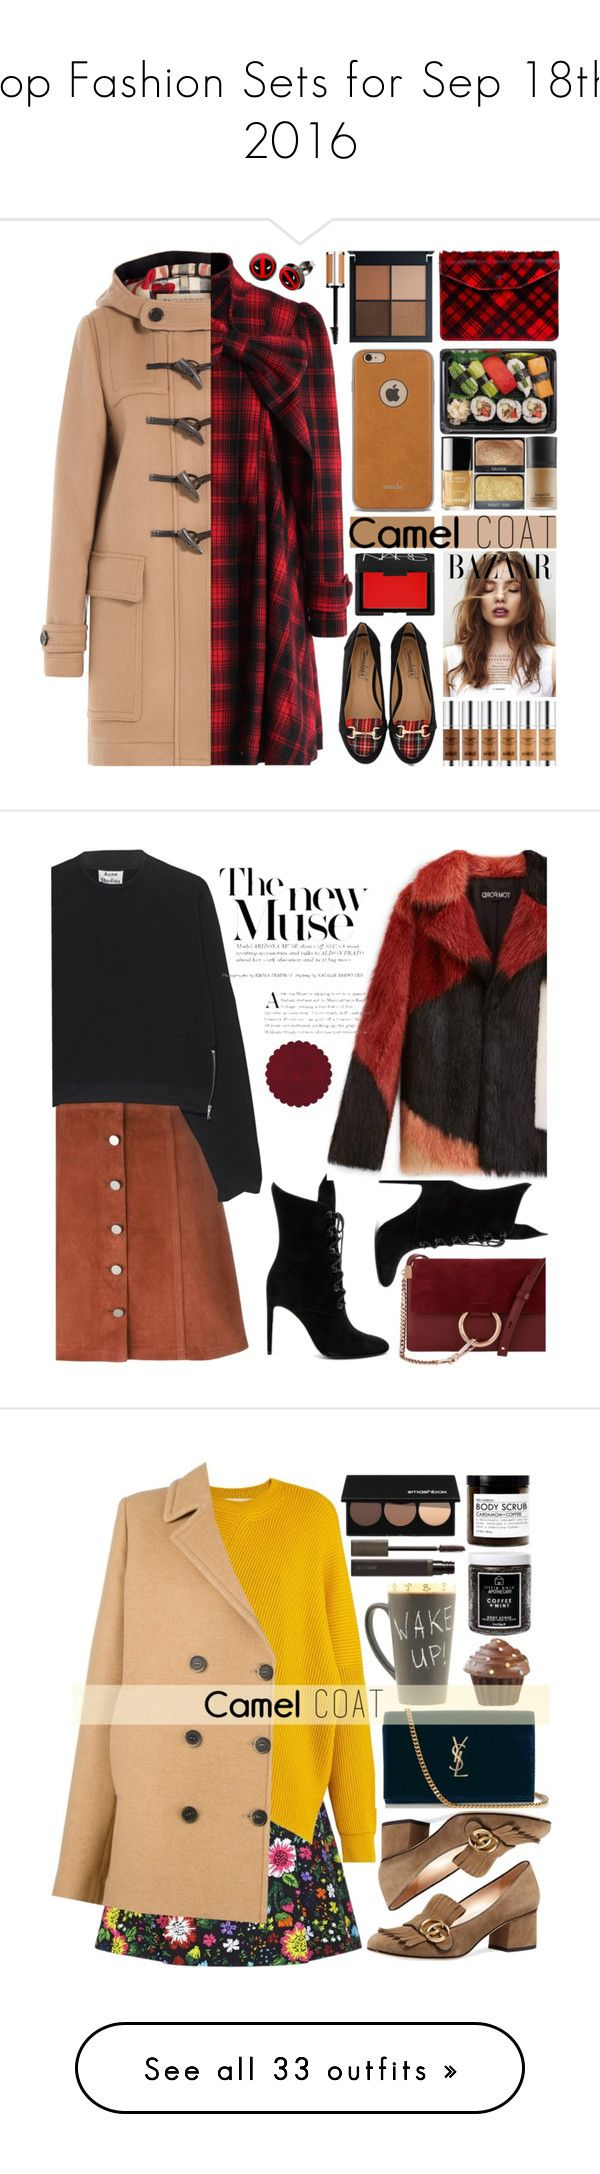 """Top Fashion Sets for Sep 18th, 2016"" by polyvore ❤ liked on Polyvore featuring Chicwish, Timeless, Moshi, Burberry, Jas M.B., NARS Cosmetics, Marvel, Givenchy, Theory and Acne Studios"